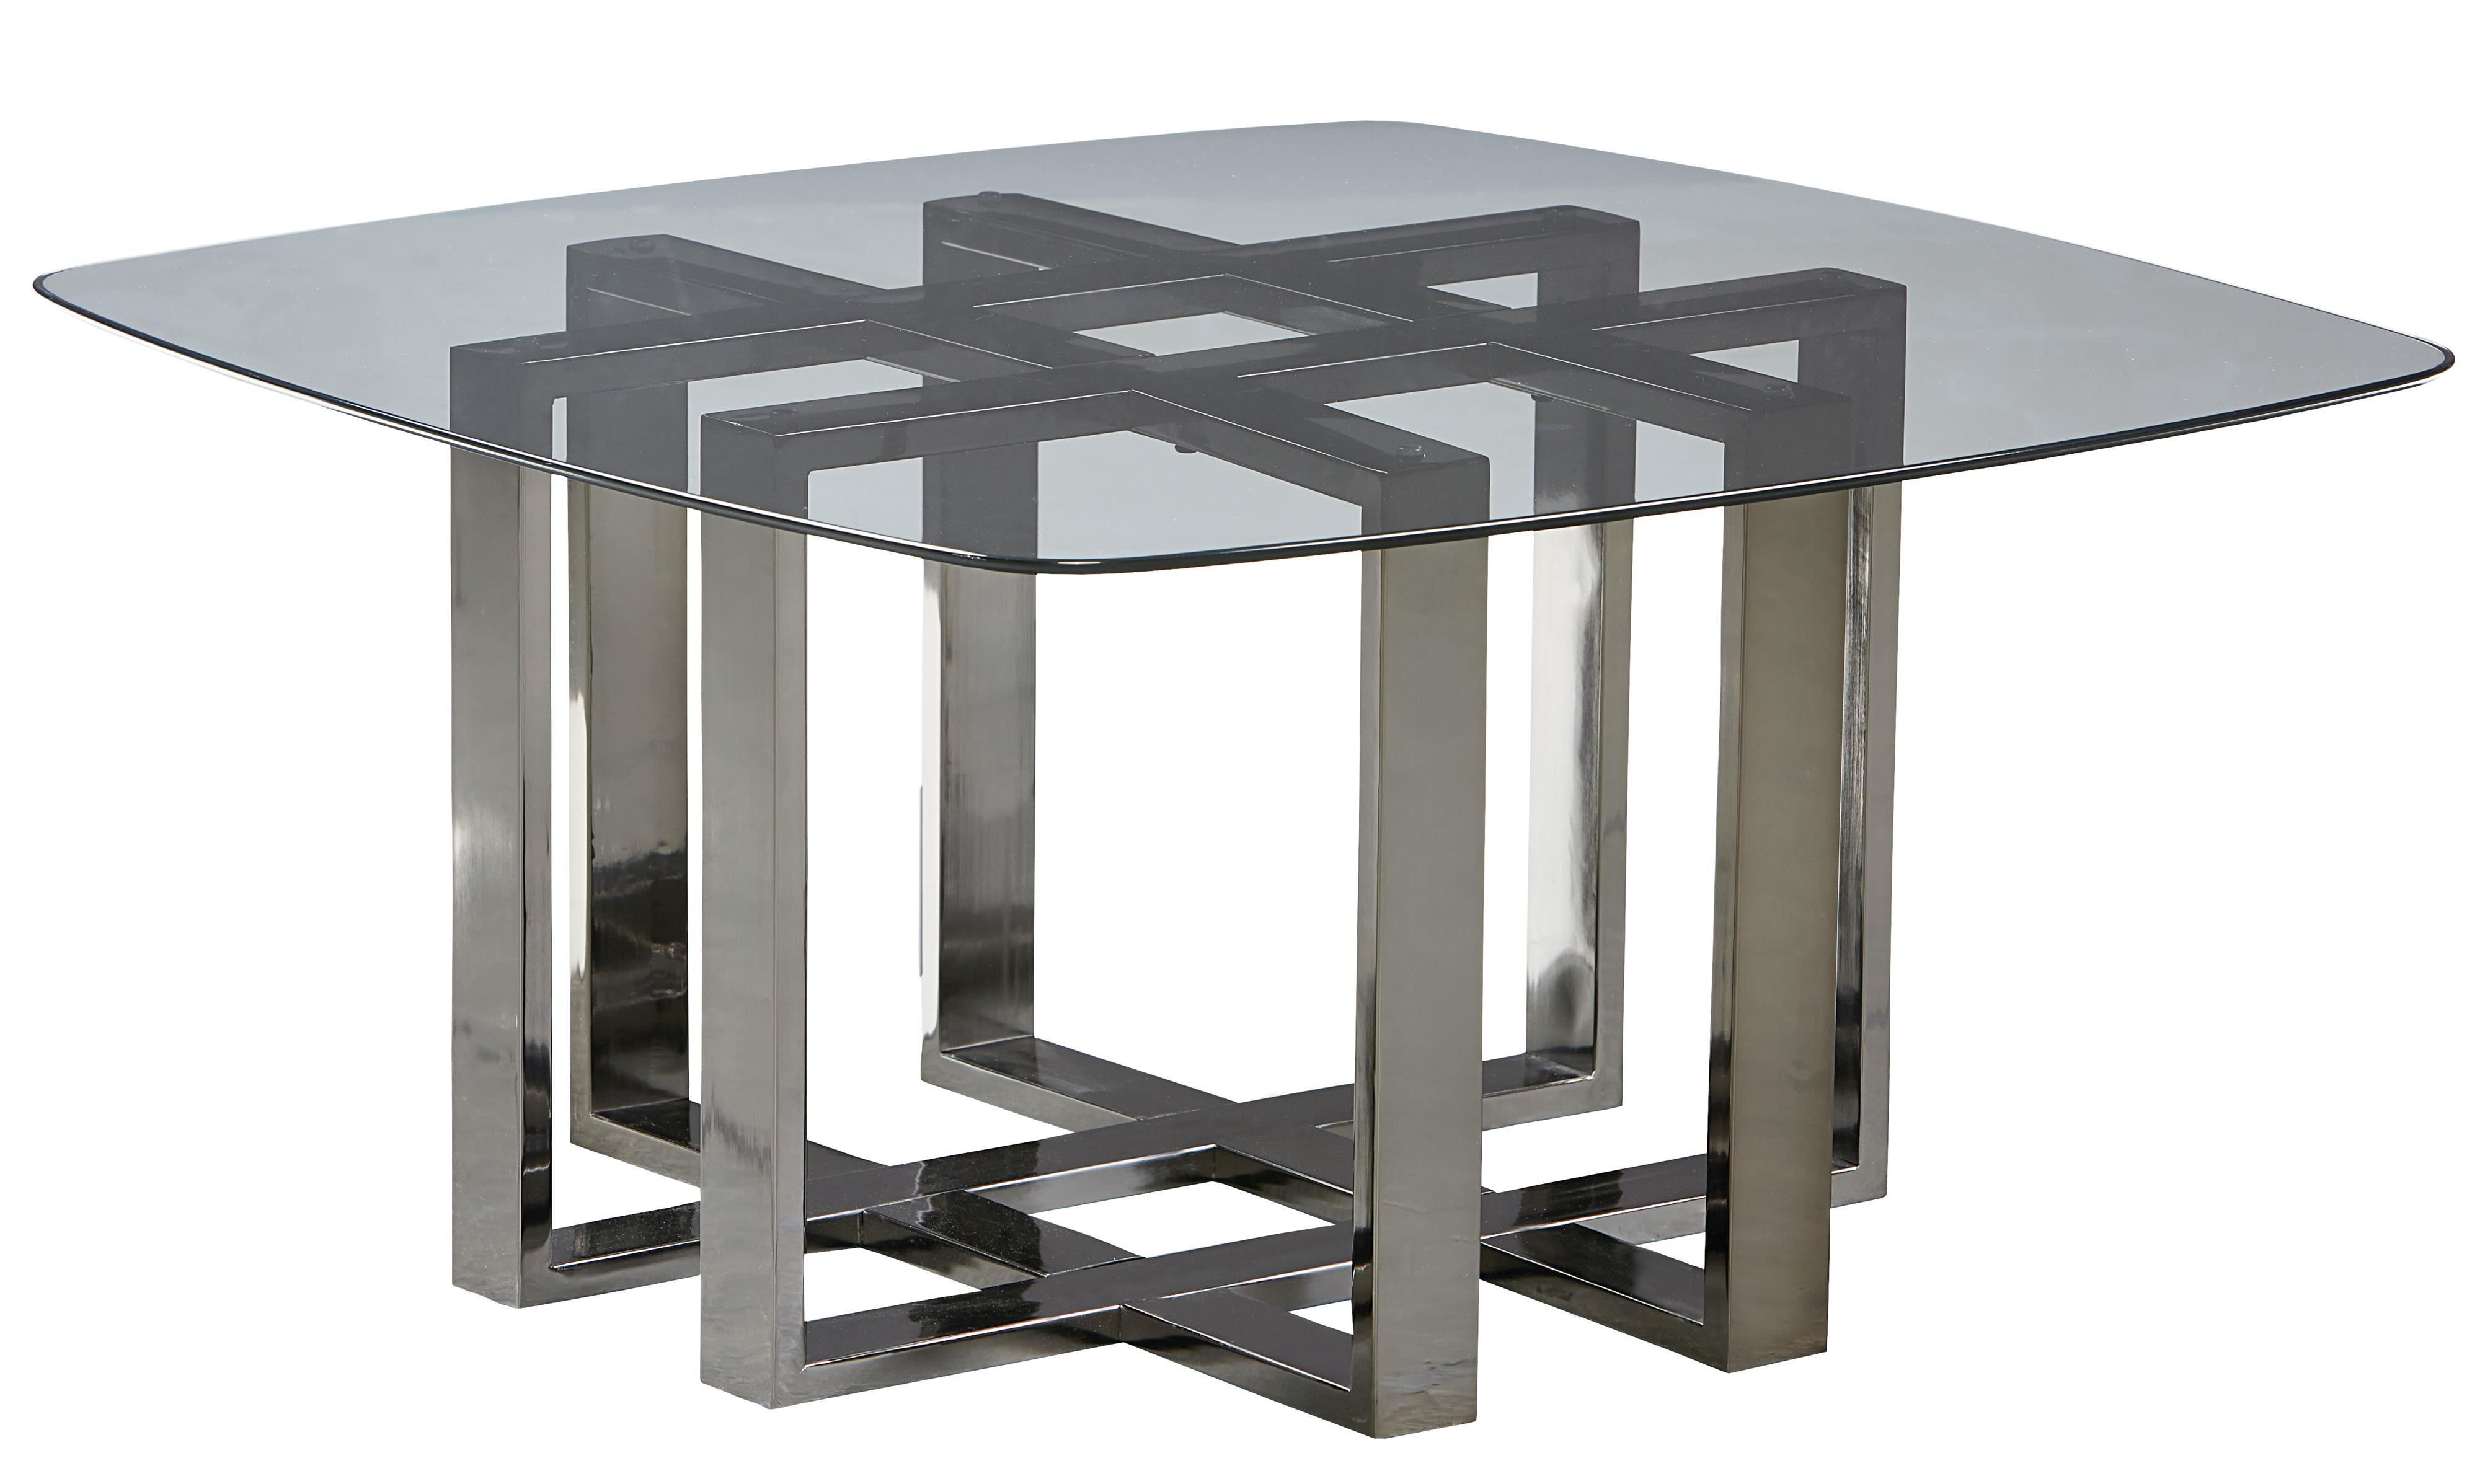 Standard Furniture Hashtag Cocktail Table - Item Number: 29201+1029201